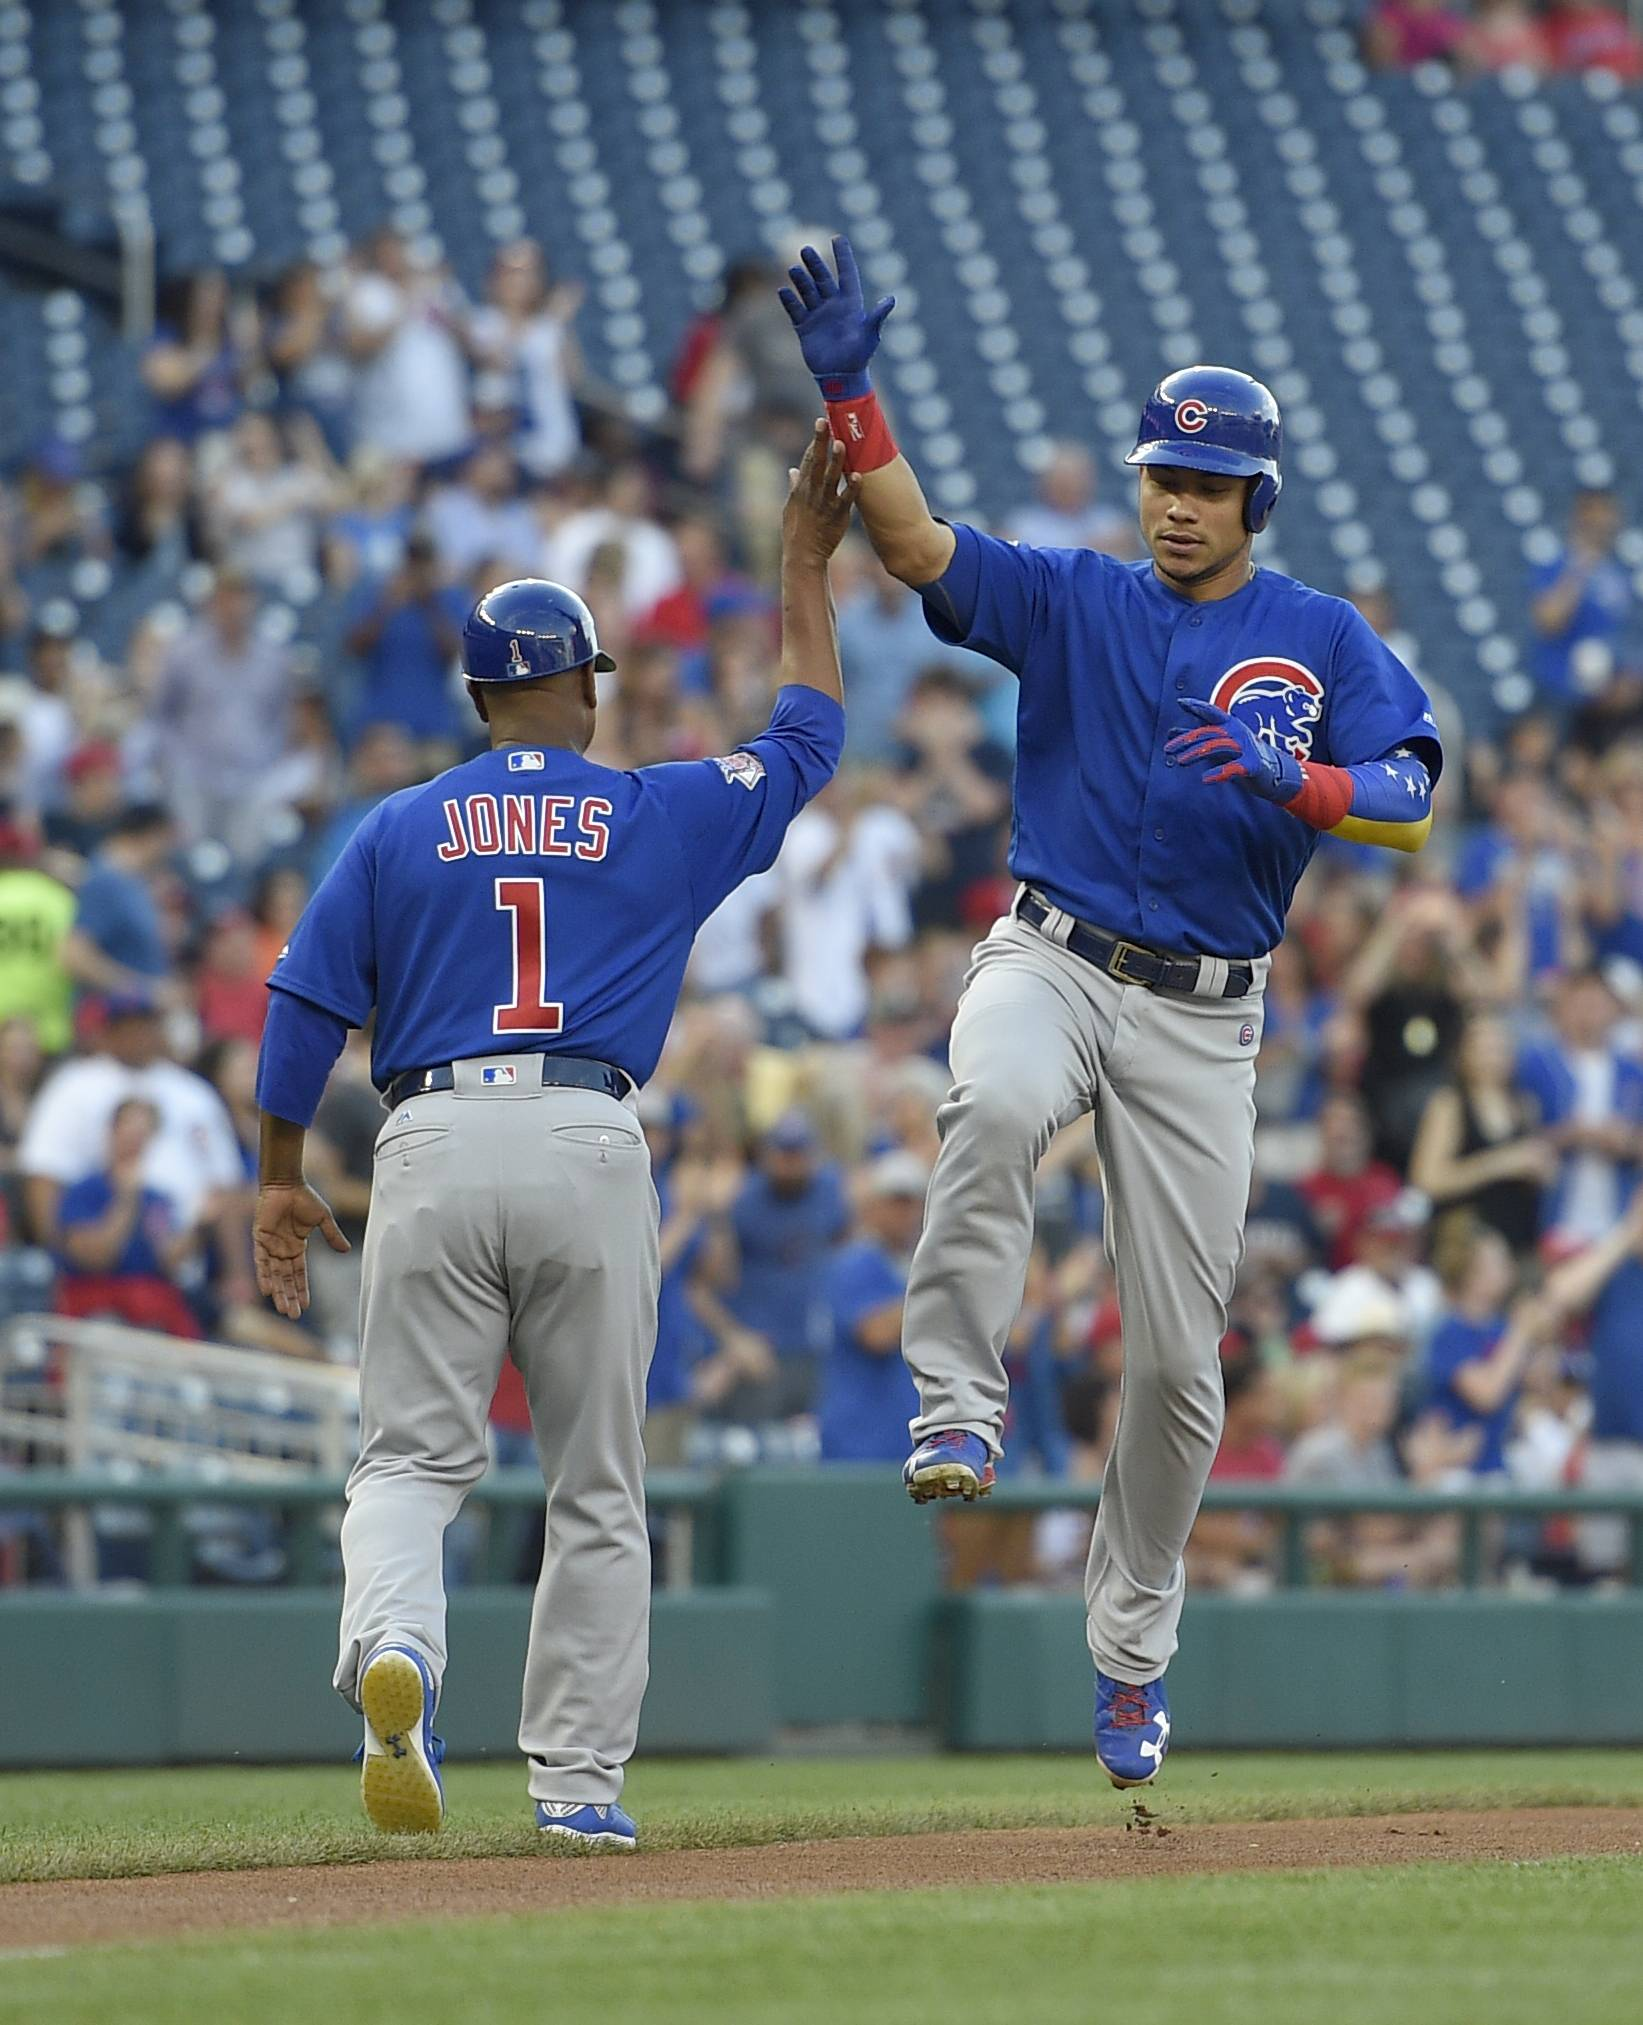 Chicago Cubs' Willson Contreras, right, celebrates his home run with third base coach Gary Jones (1) as he rounds third during the first inning of a baseball game against the Washington Nationals, Monday, June 26, 2017, in Washington. (AP Photo/Nick Wass)